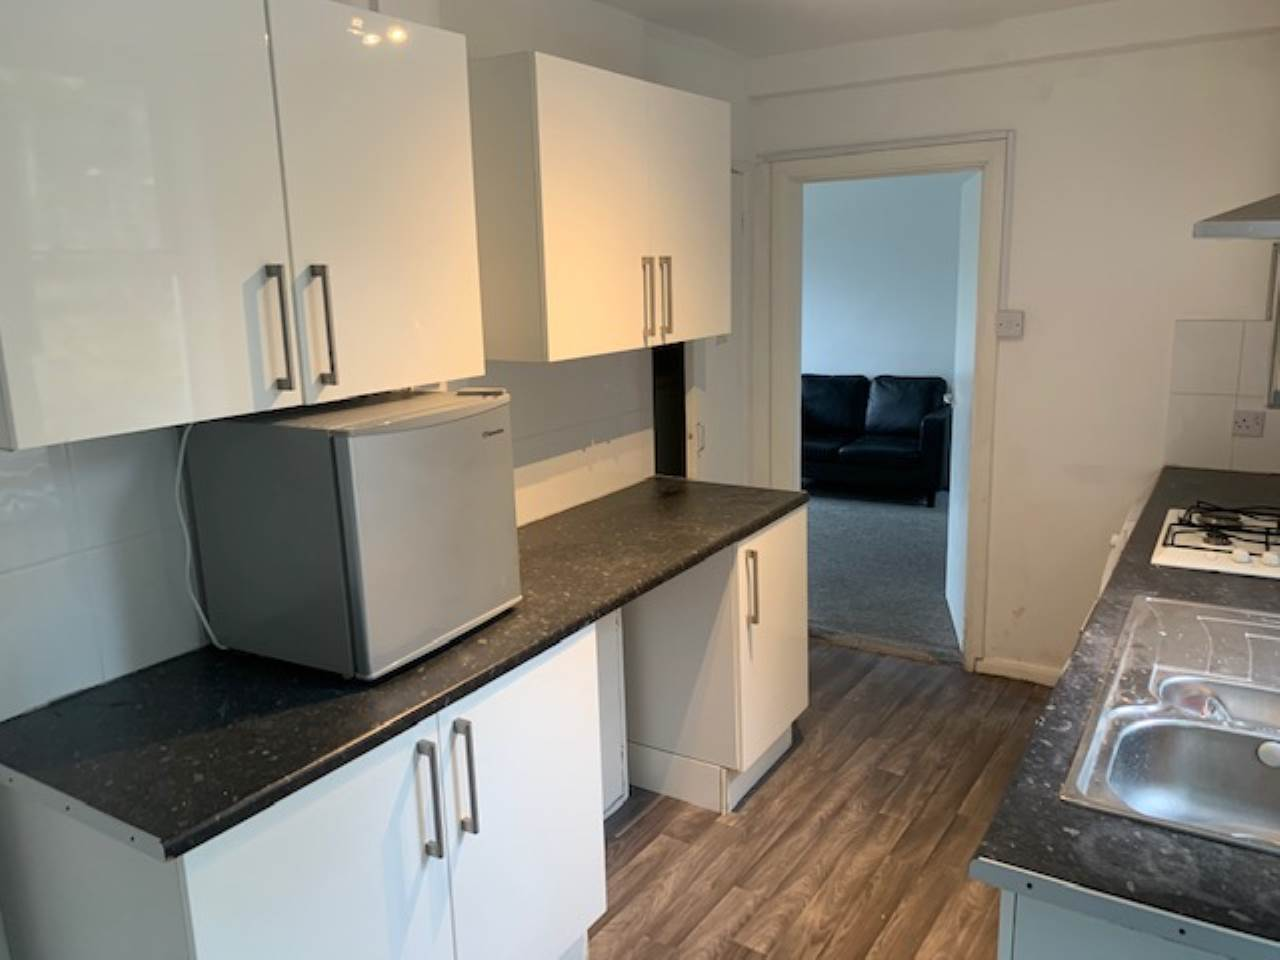 5 bed house to rent in The High Way - Property Image 1